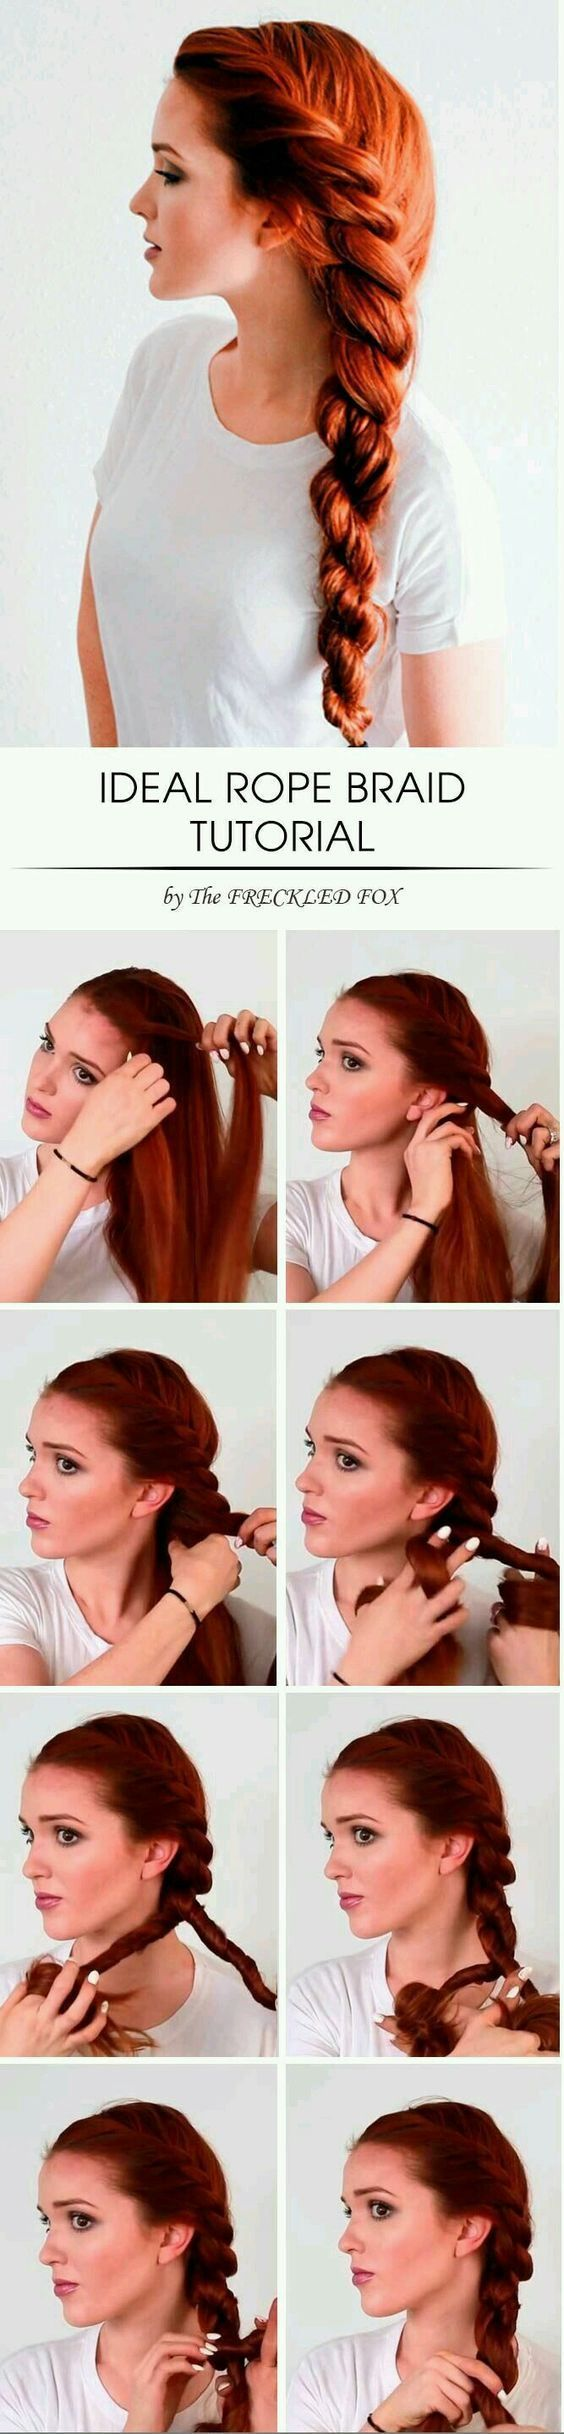 Simple hairstyle guides for perfect long hair every day – hair